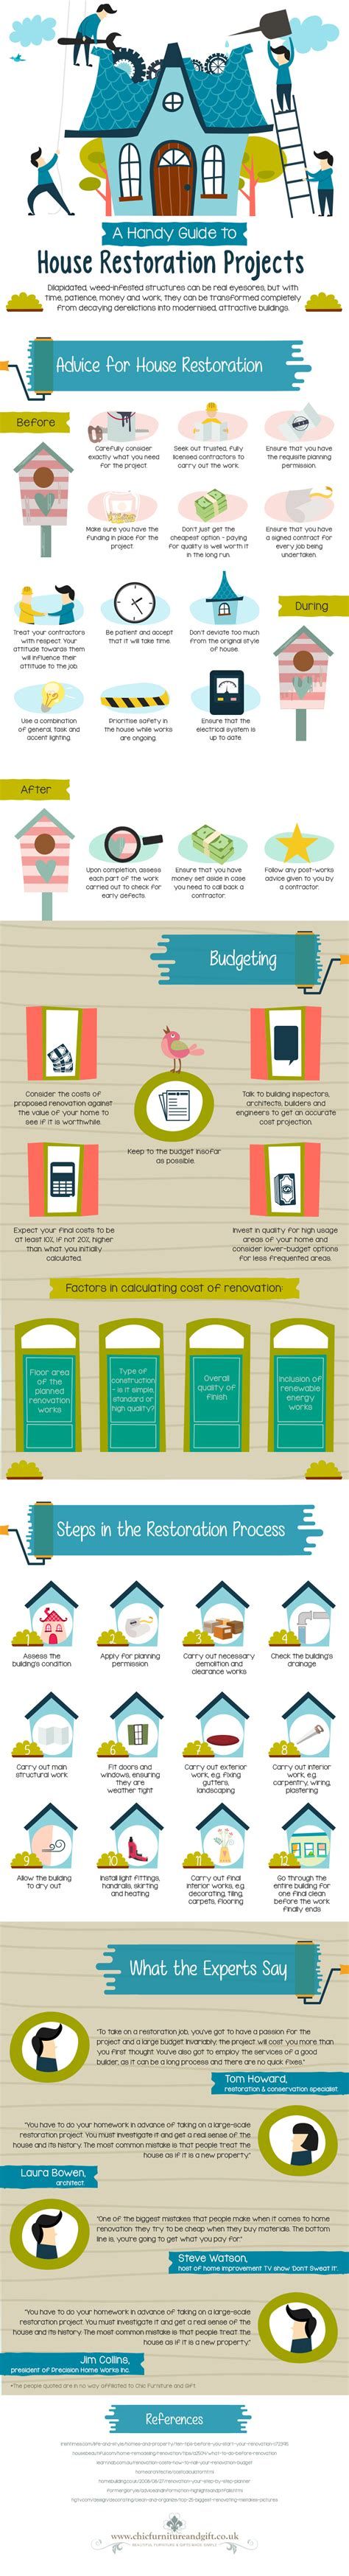 home design contents restoration infographic a handy guide to house restoration projects home design garden architecture